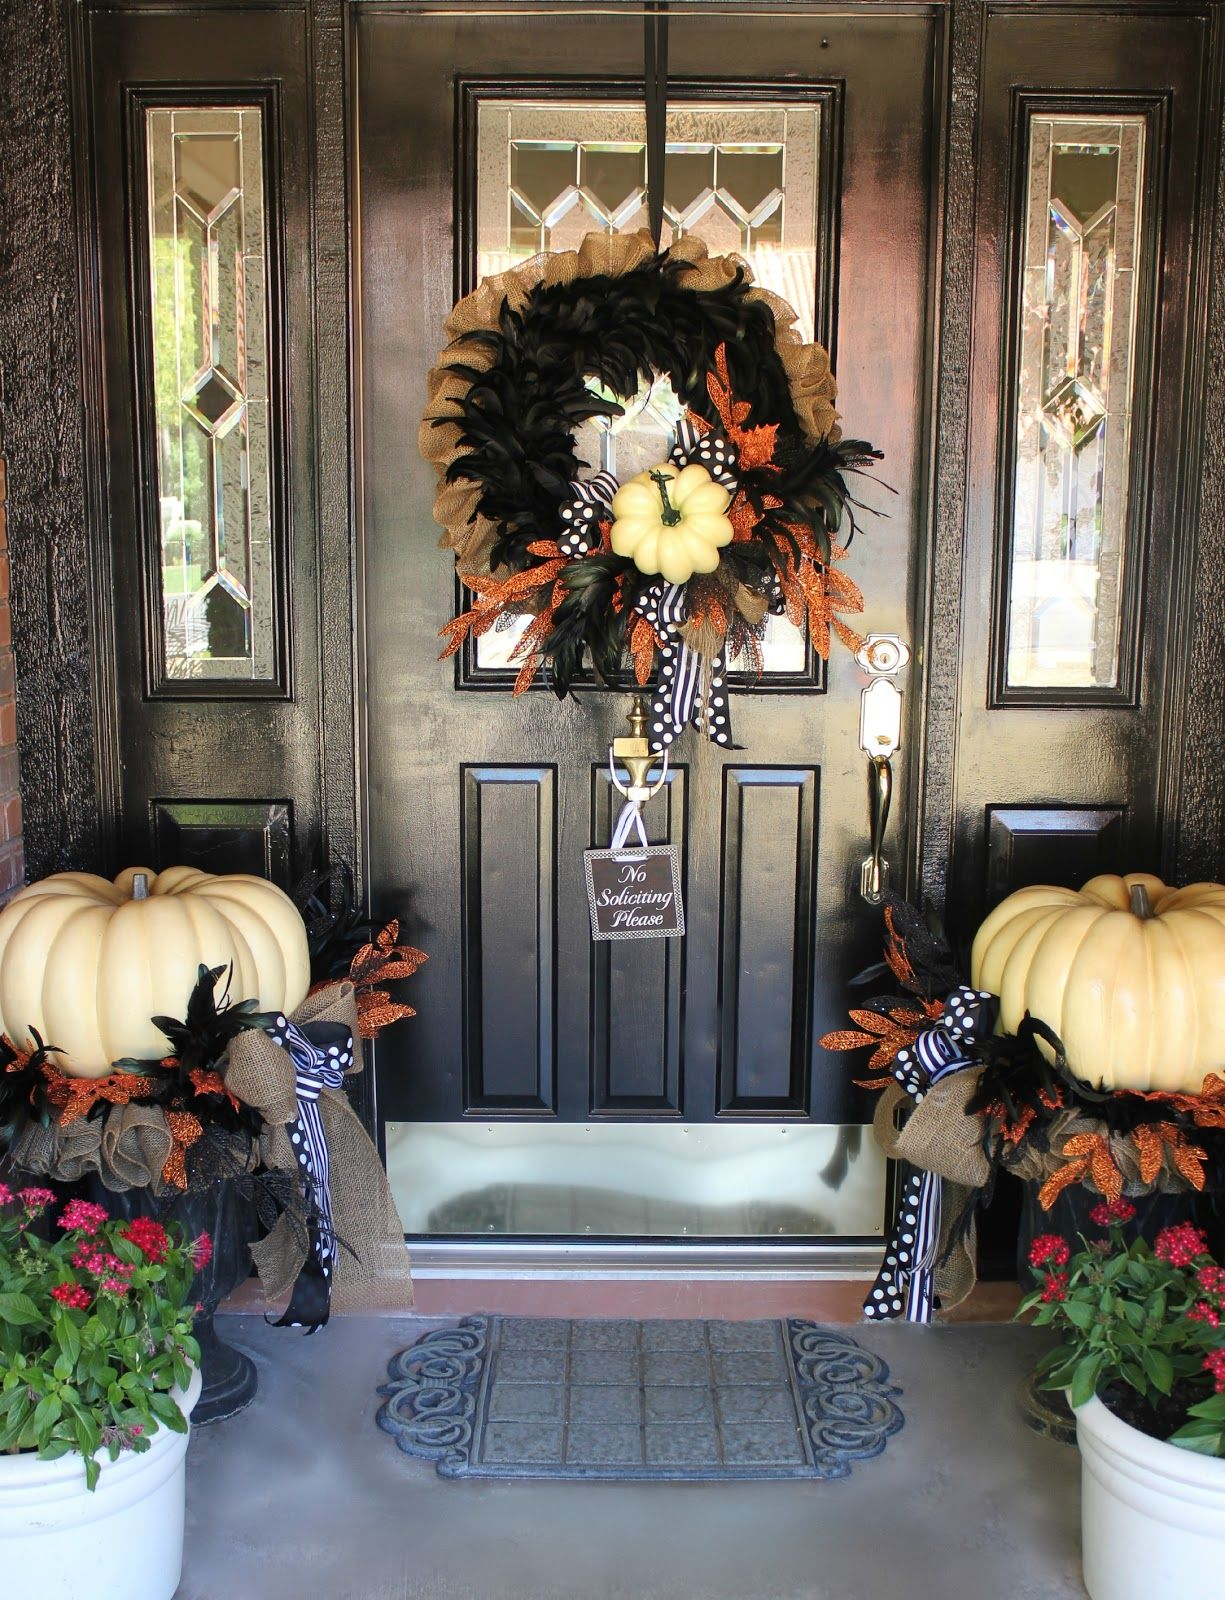 Outdoor fall decorating ideas front porch - 25 Elegant Halloween Decorations Ideas Fall Decorationshalloween Decorationsfront Porch